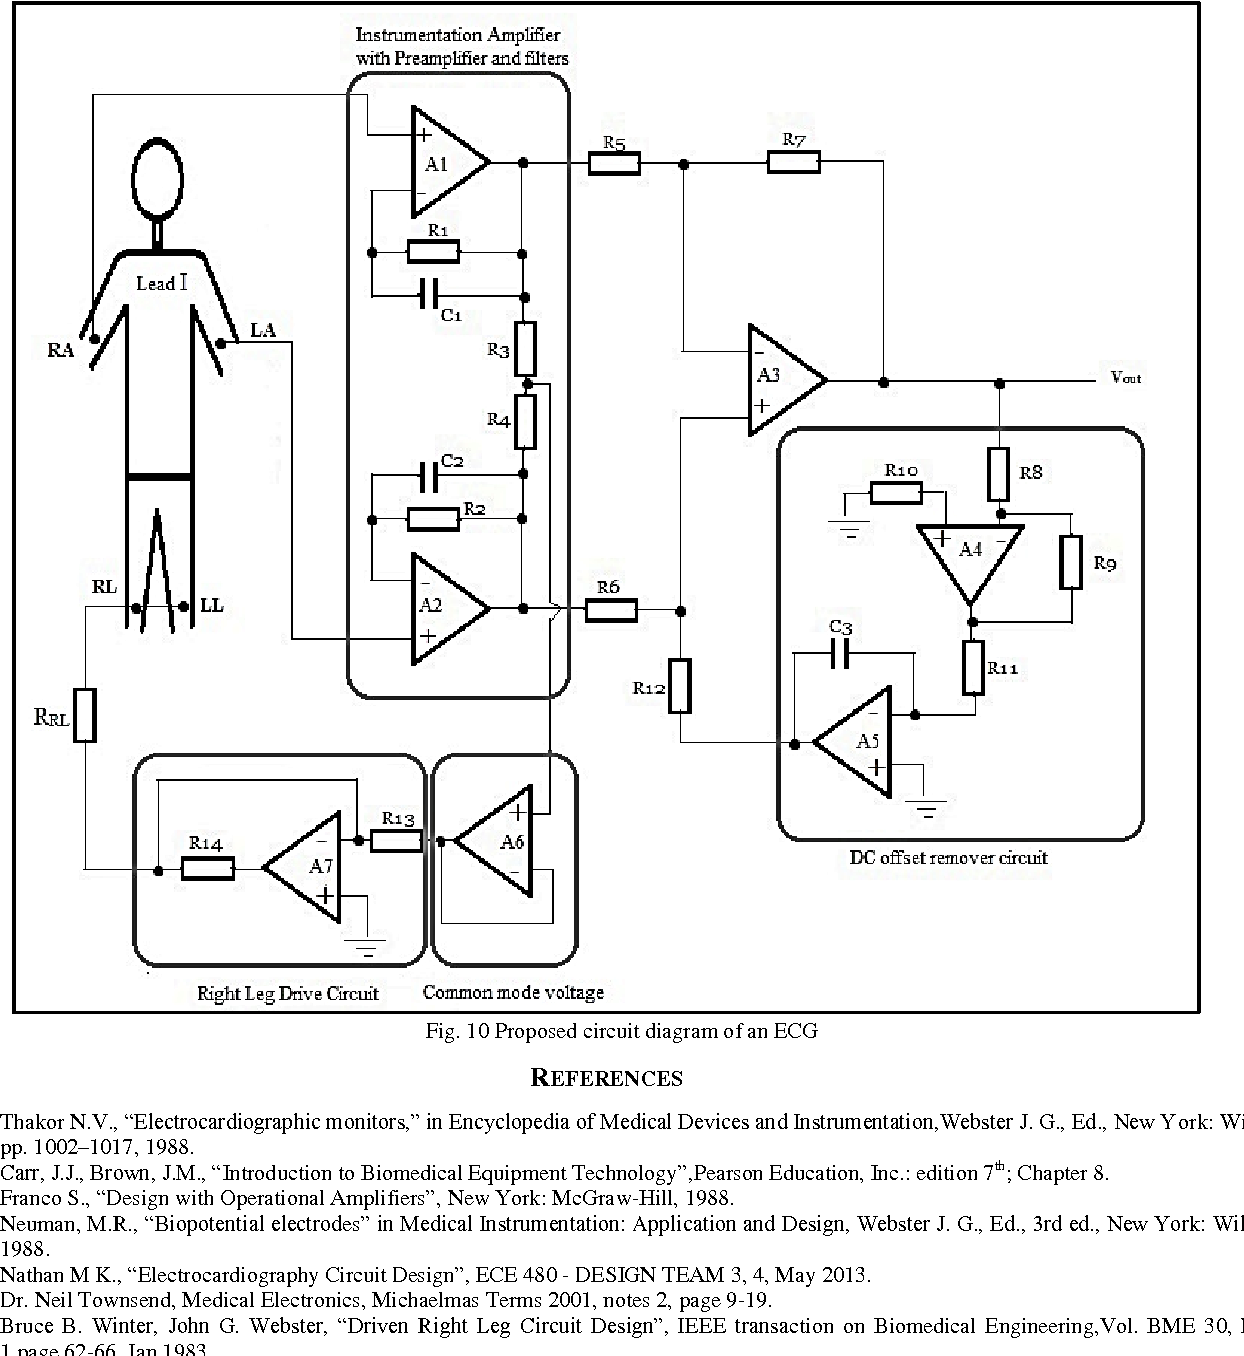 Indigenous Design Of Electronic Circuit For Electrocardiograph Instrumentation Amplifier Diagram Semantic Scholar